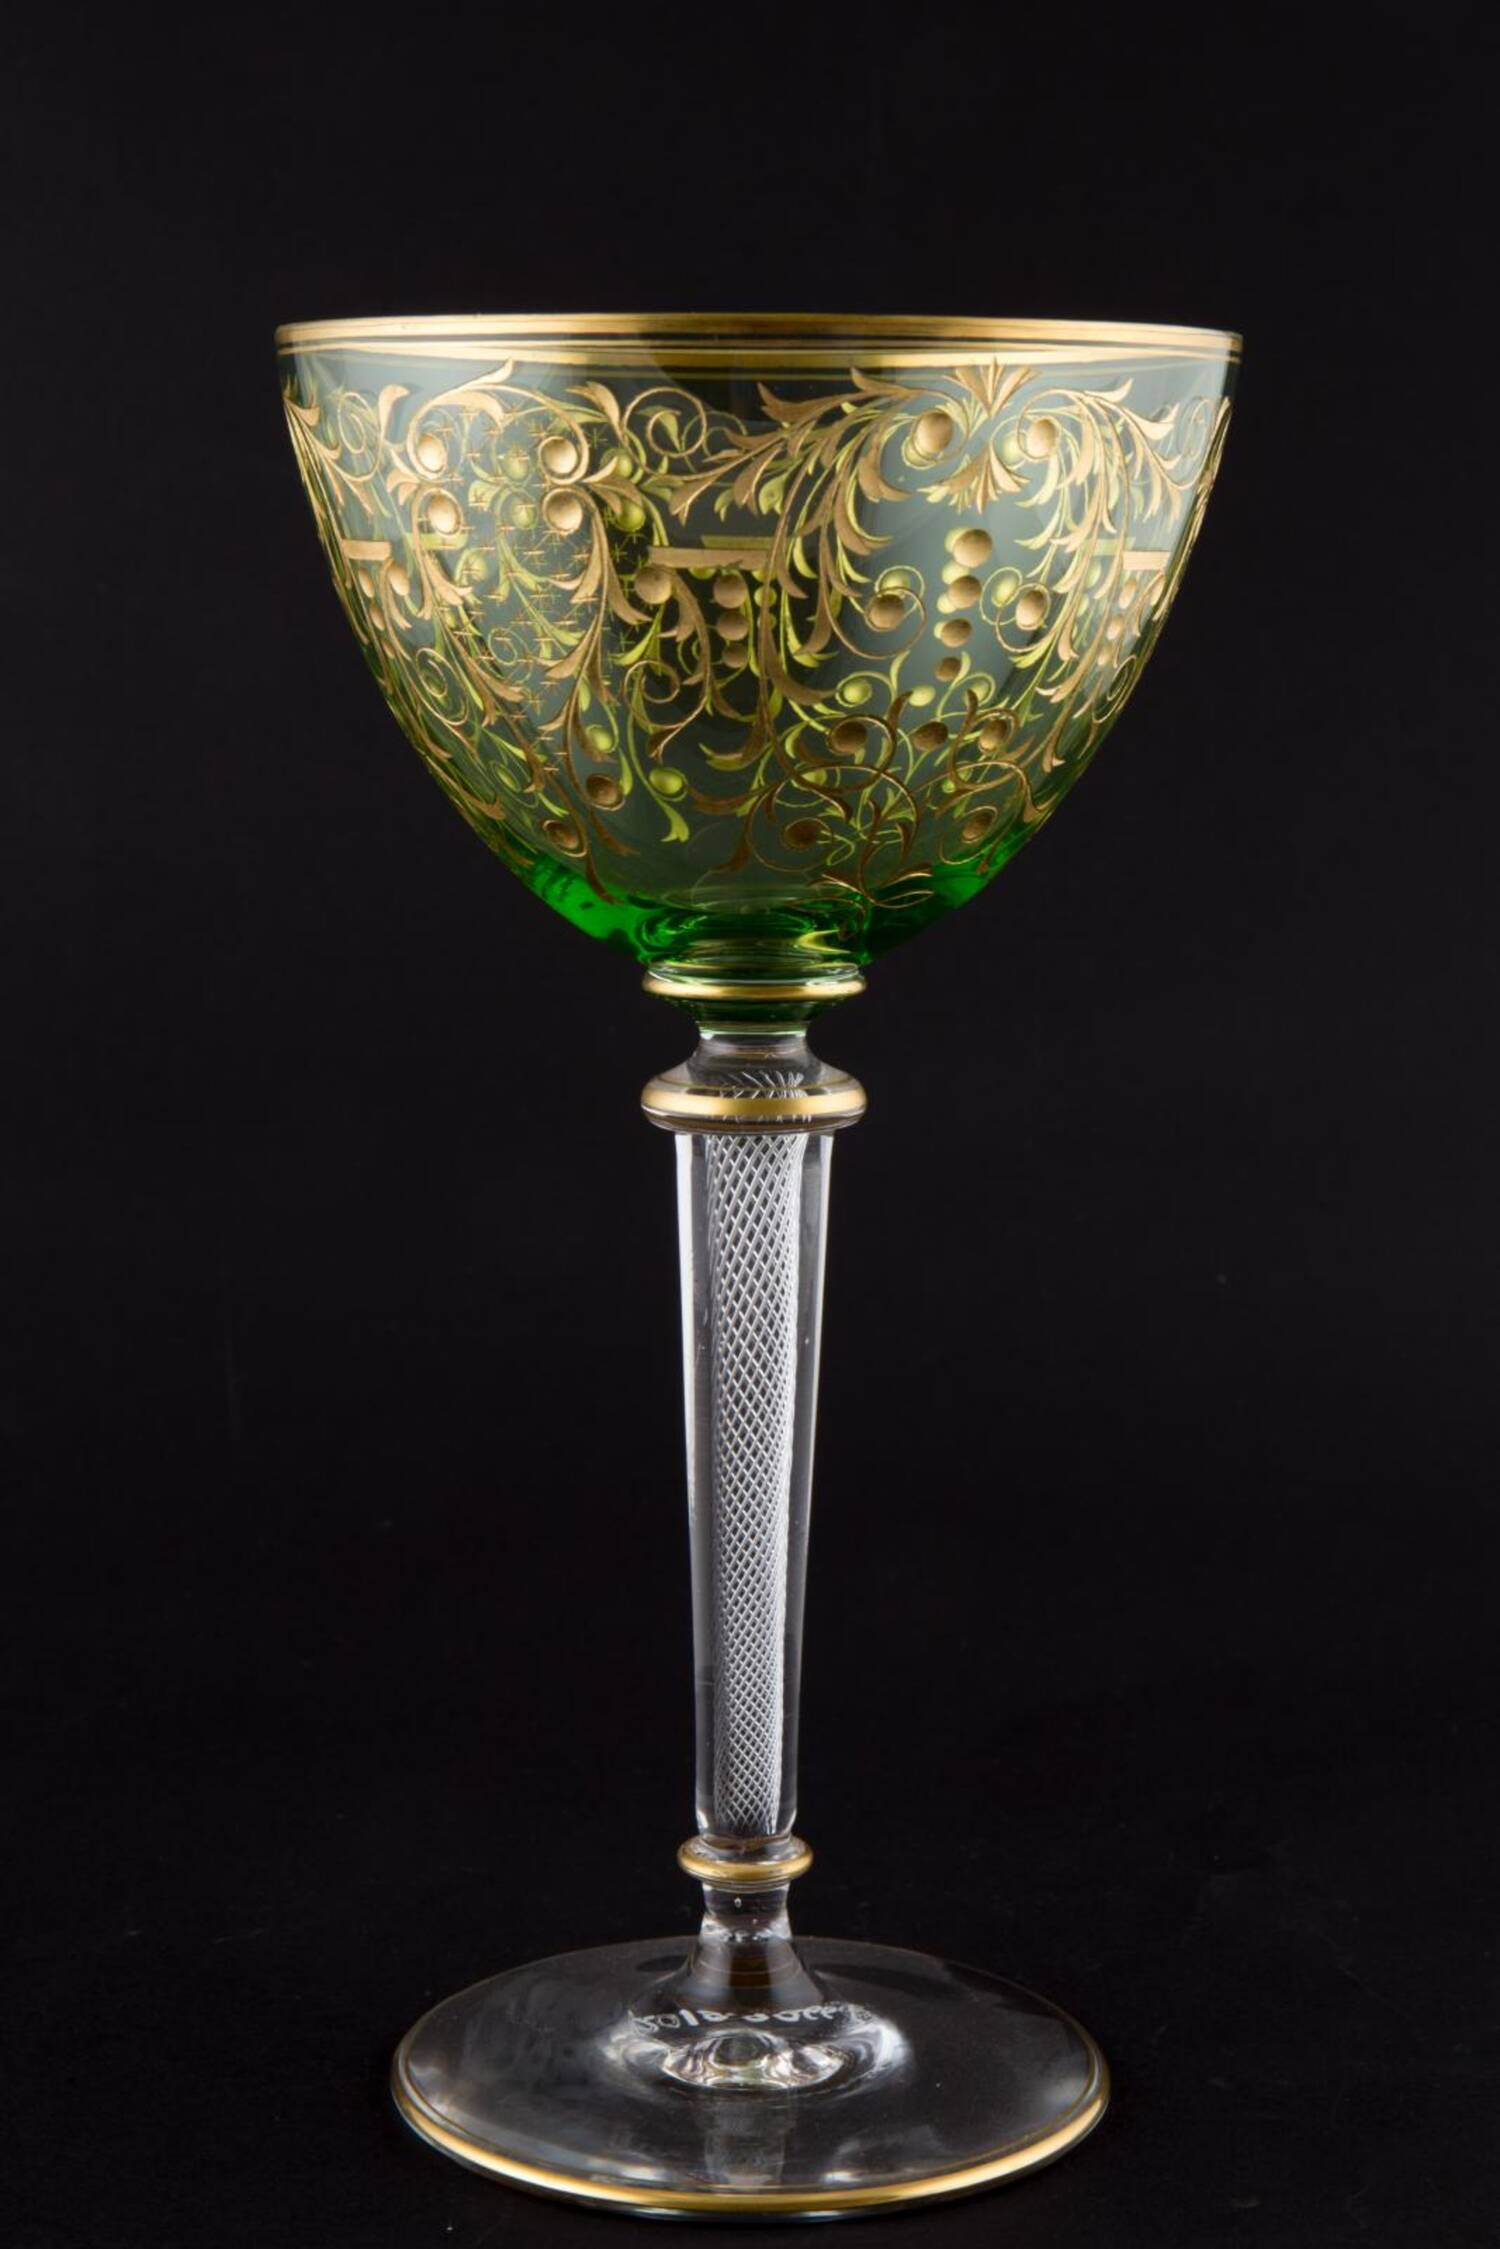 A French champagne glass used at Fyvie Castle. The glass is partially gilded with an elaborate pattern, and has a green colour. The stem has a delicate lattice-type silver decoration.